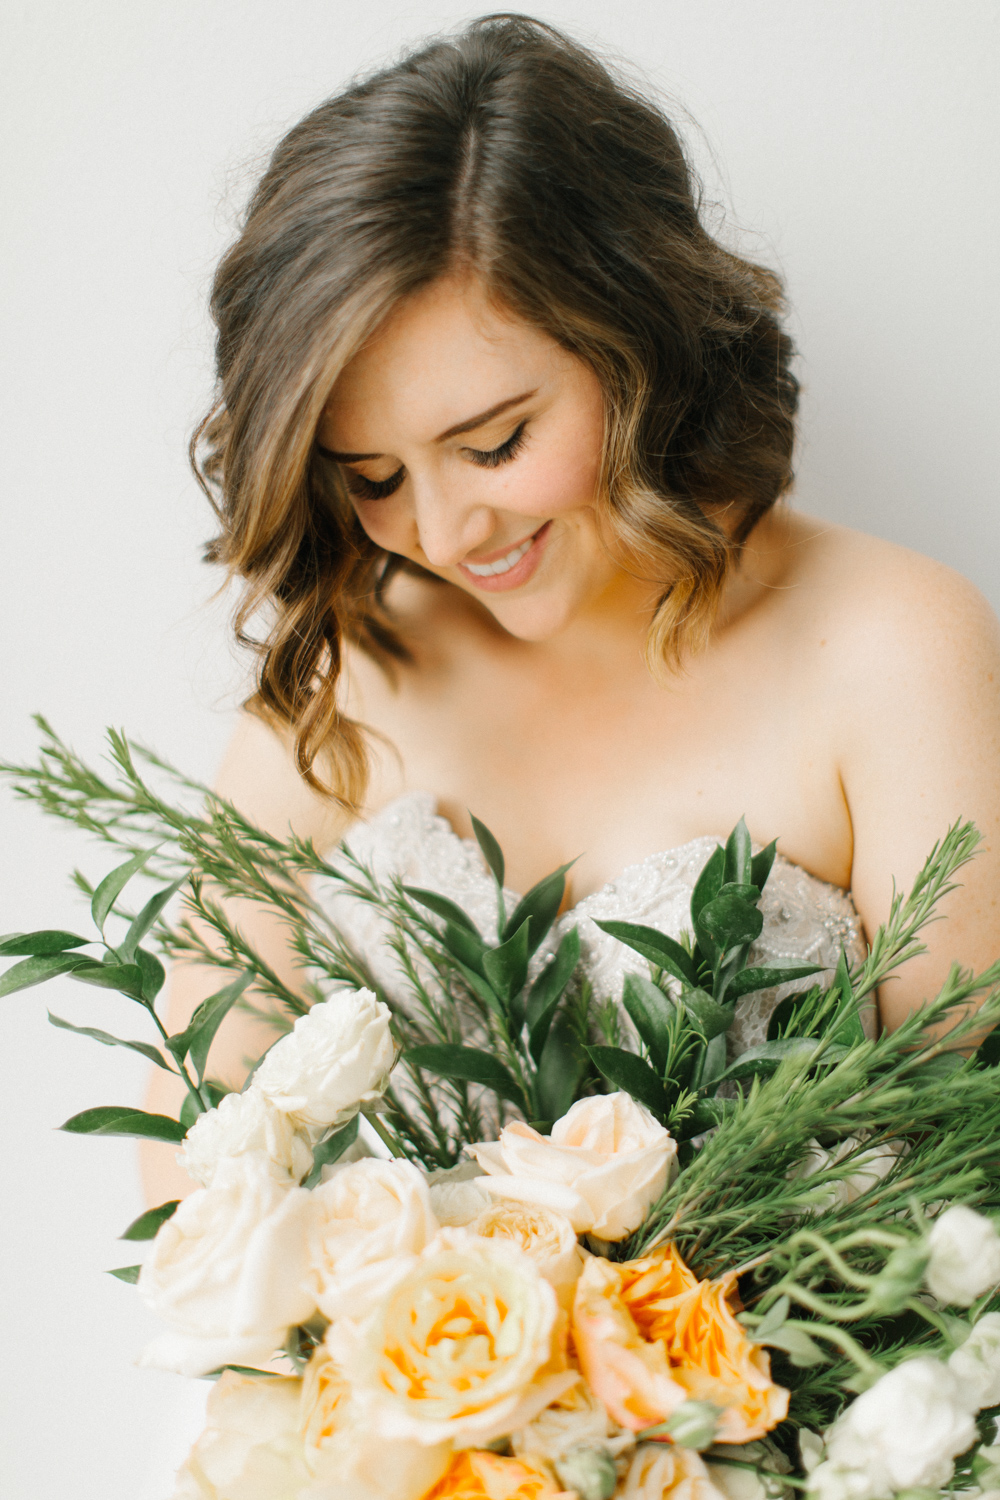 Seattle Fine Art Wedding Photographer | Seattle Downtown White Studio Bridal Session | Stunning Wedding Bouquet | Seattle Bride | Seattle Wedding | Photography Studio Space | Emma Rose Company Wedding Photography-20.jpg